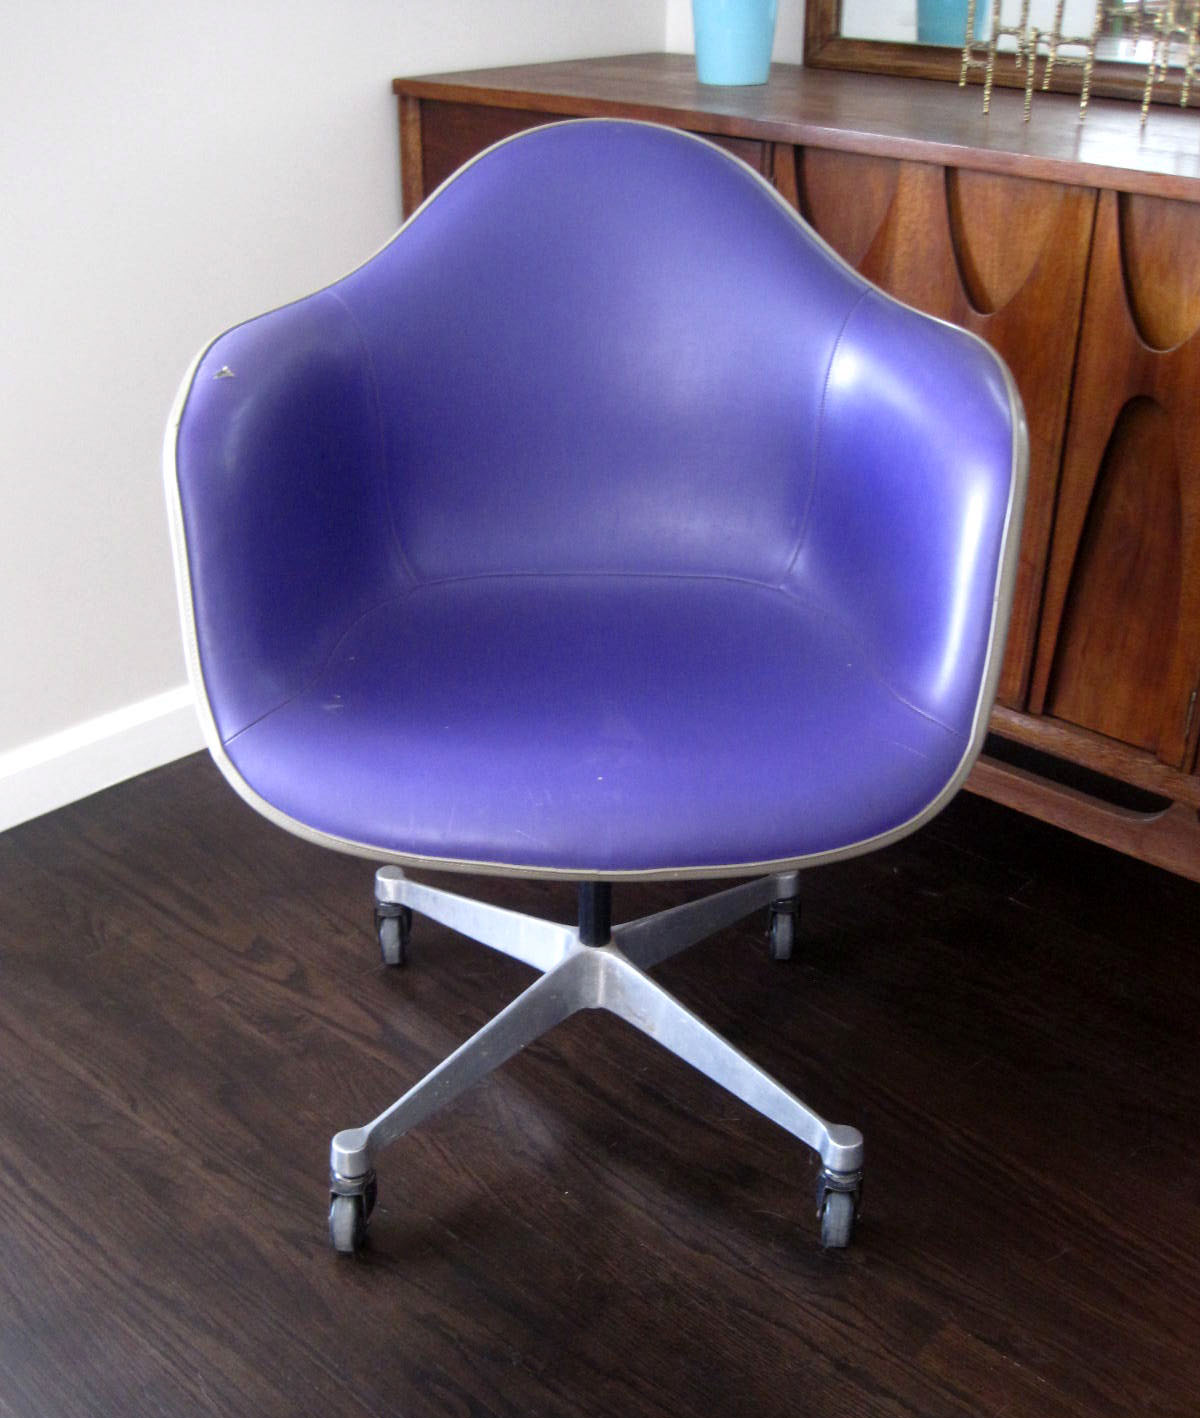 Herman Miller Eames Office Chair Rhan Vintage Mid Century Modern Blog Score Herman